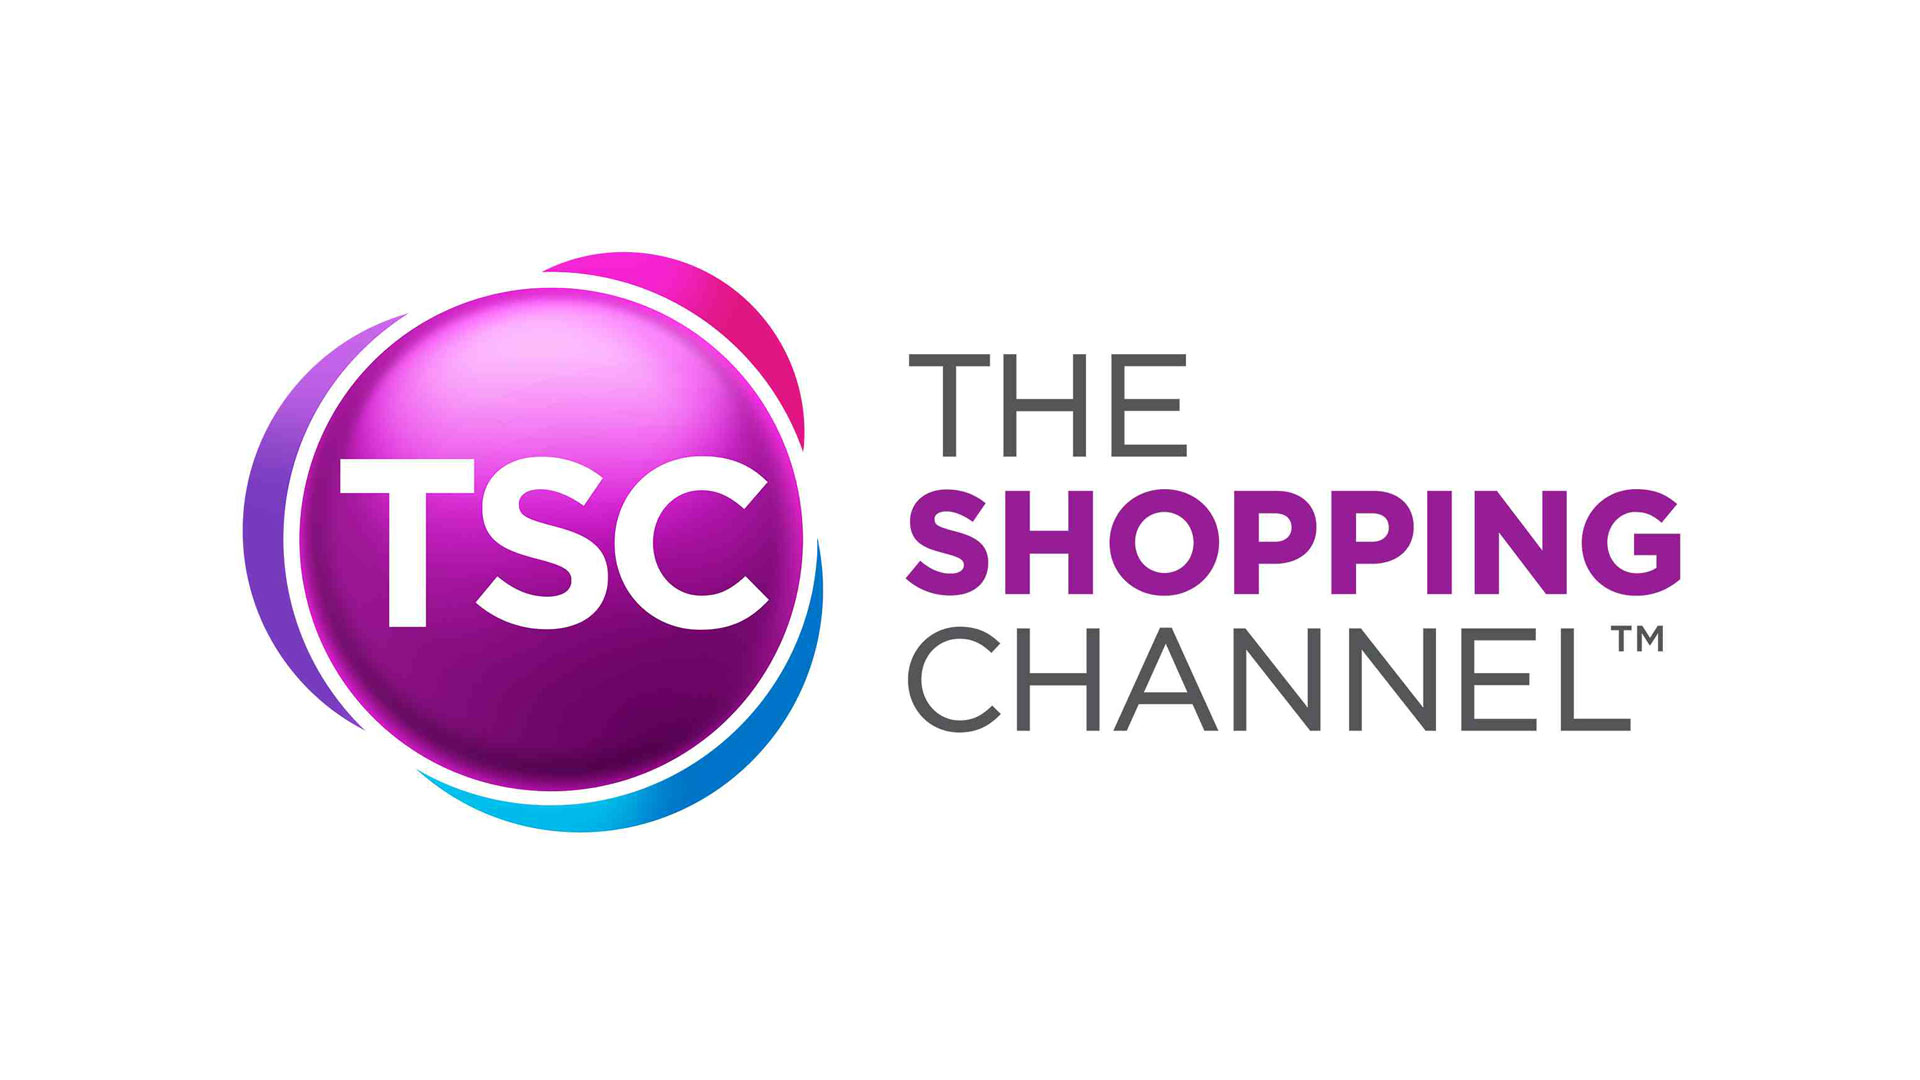 Tv online shopping channel